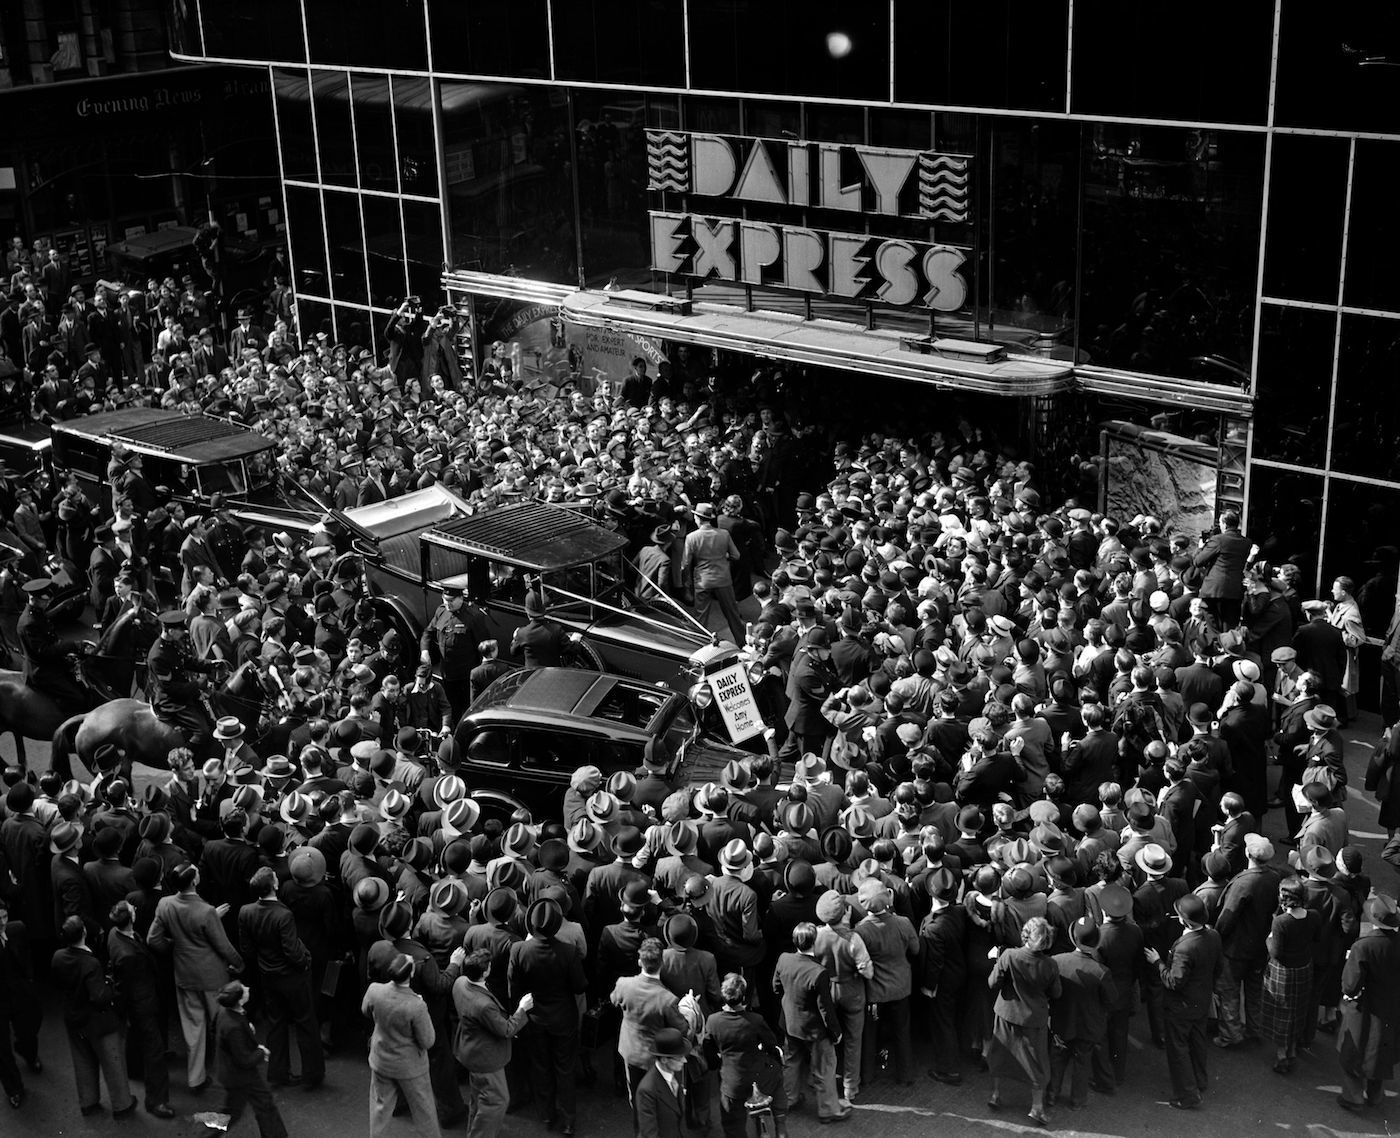 December 1932: Crowds gather round the entrance to the Daily Express building, Fleet Street, London, to greet English aviator Amy Johnson (1903 - 1941), after her record solo flight to Cape Town. (Photo by London Express/Getty Images)